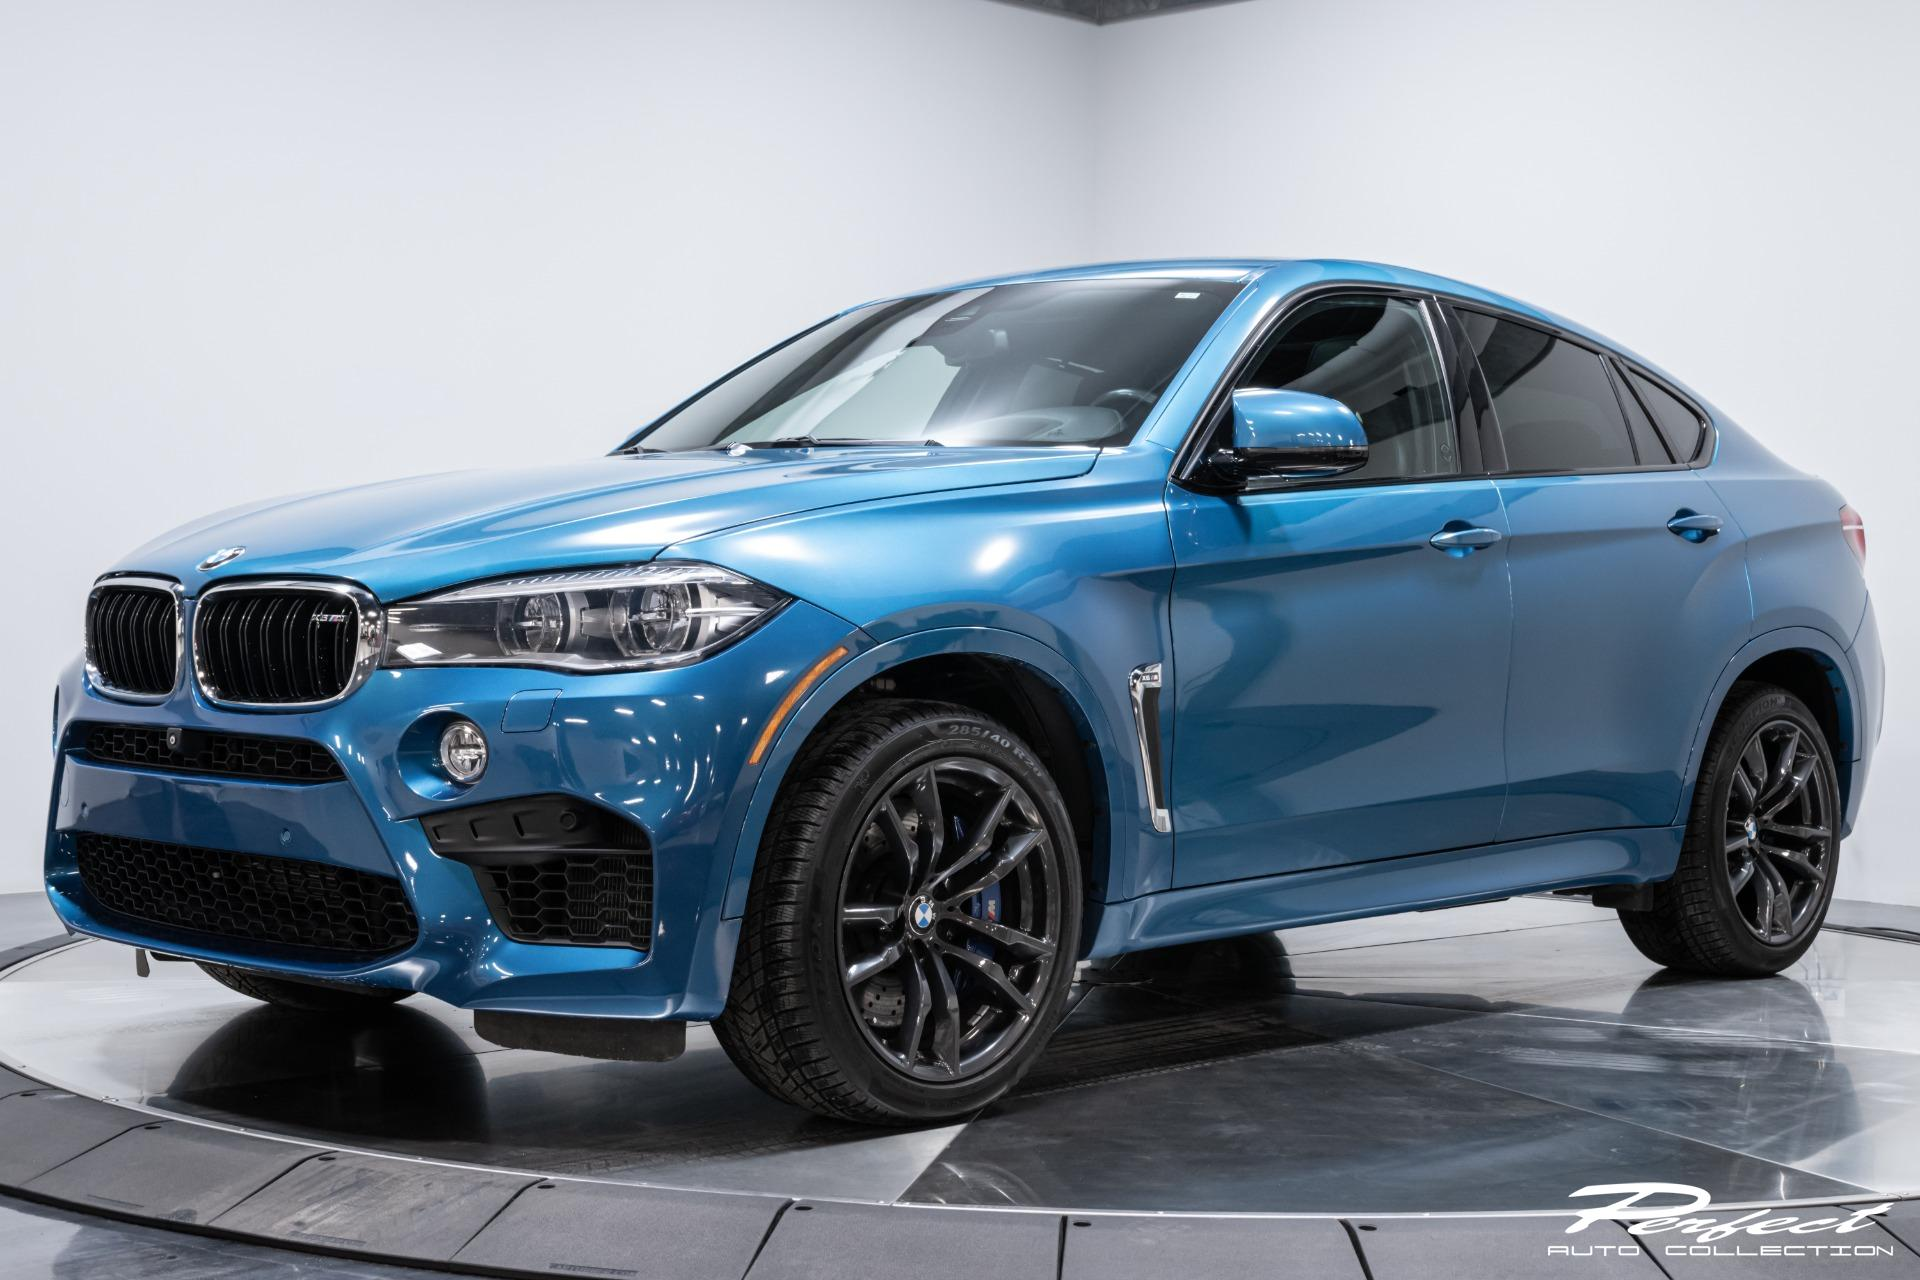 Used 2015 BMW X6 M for sale Sold at Perfect Auto Collection in Akron OH 44310 1